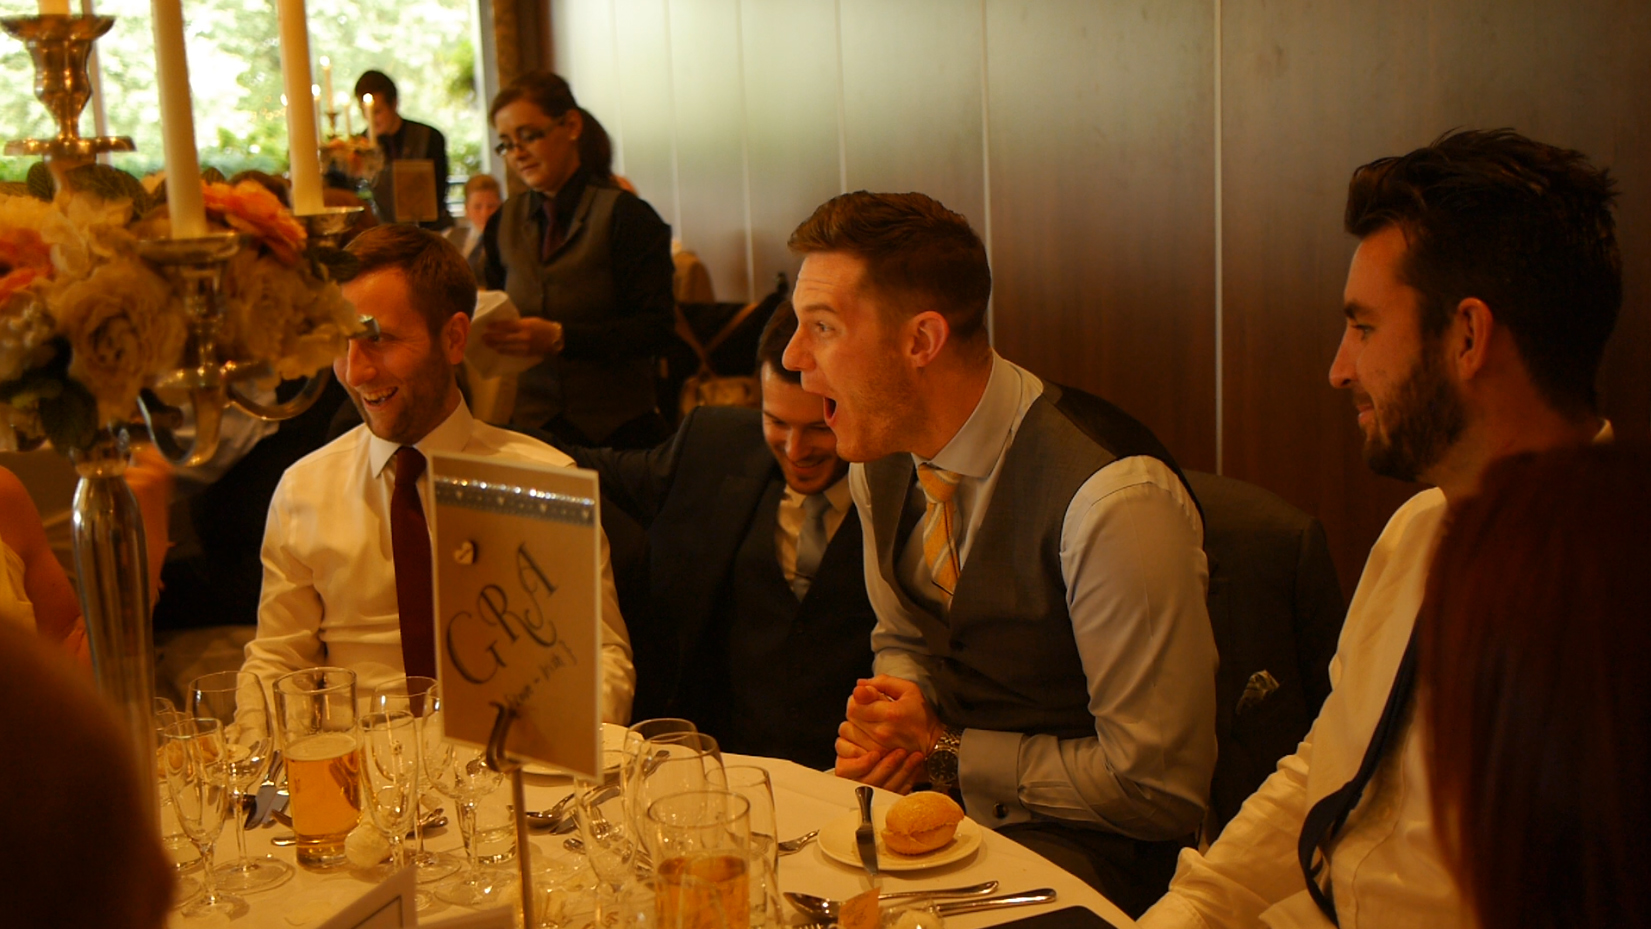 Manchester Corporate Entertainment mind reader magician at a table